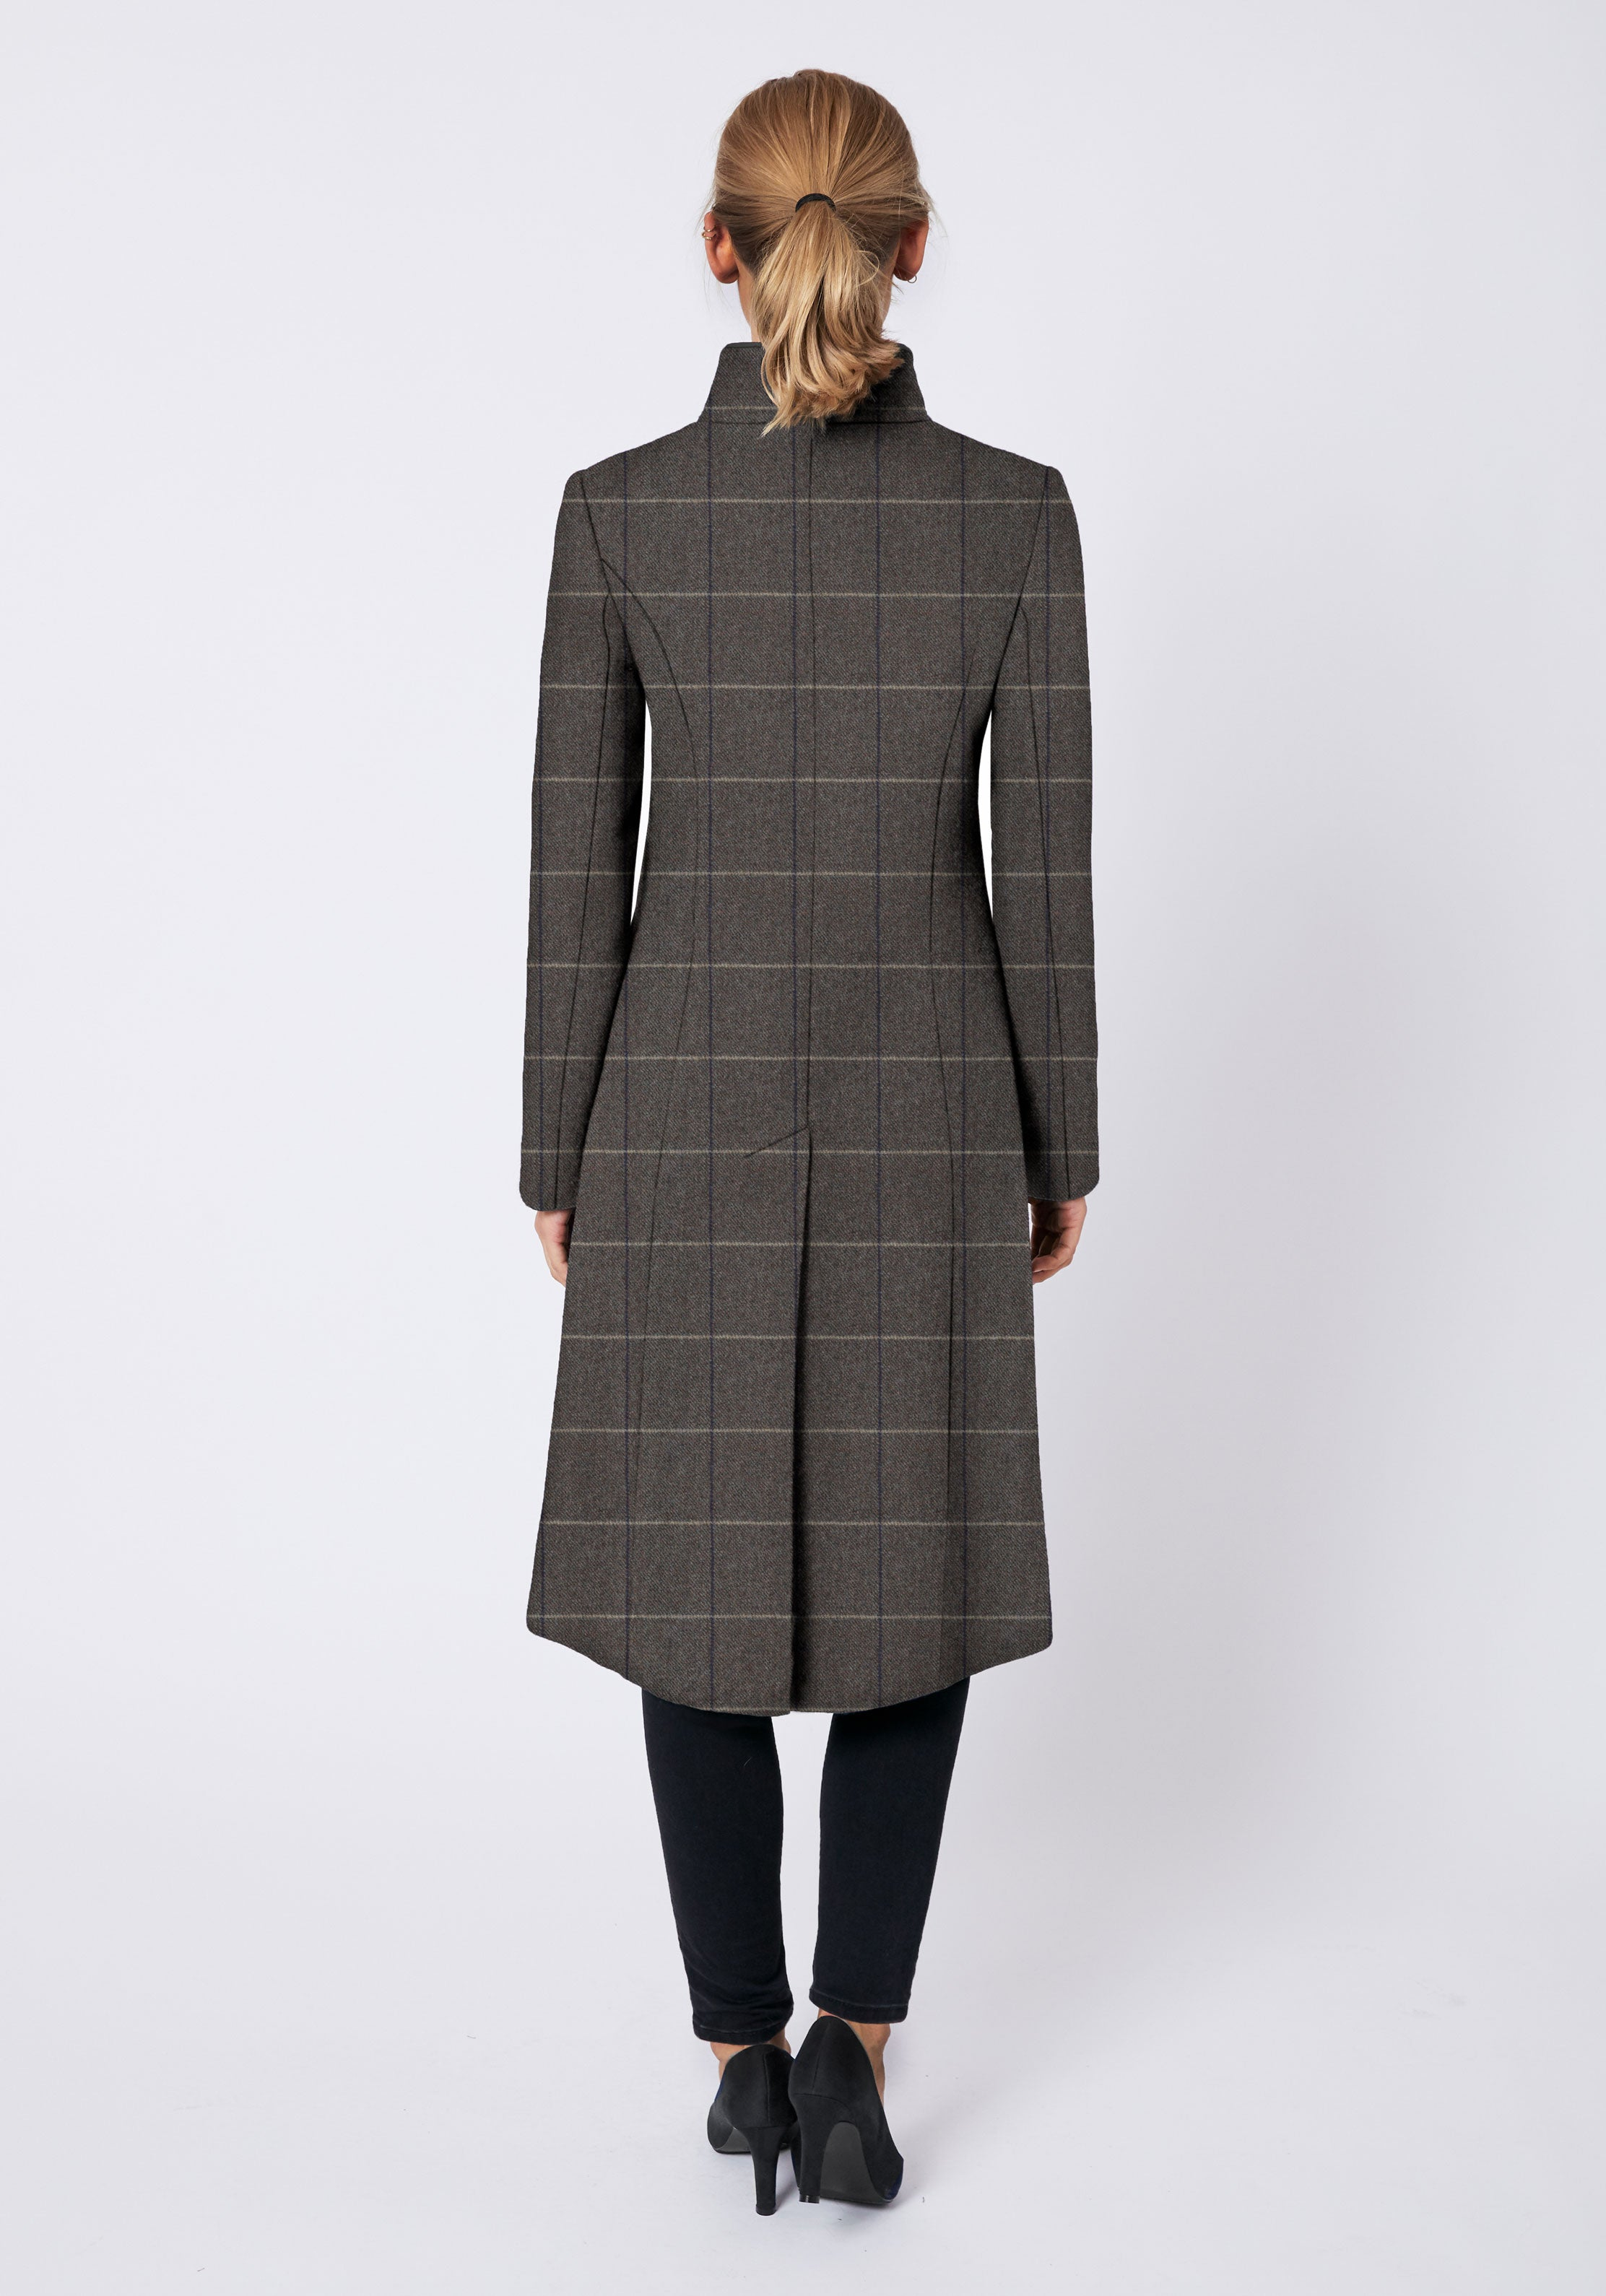 Opera Coat in Taupe with Cream Check